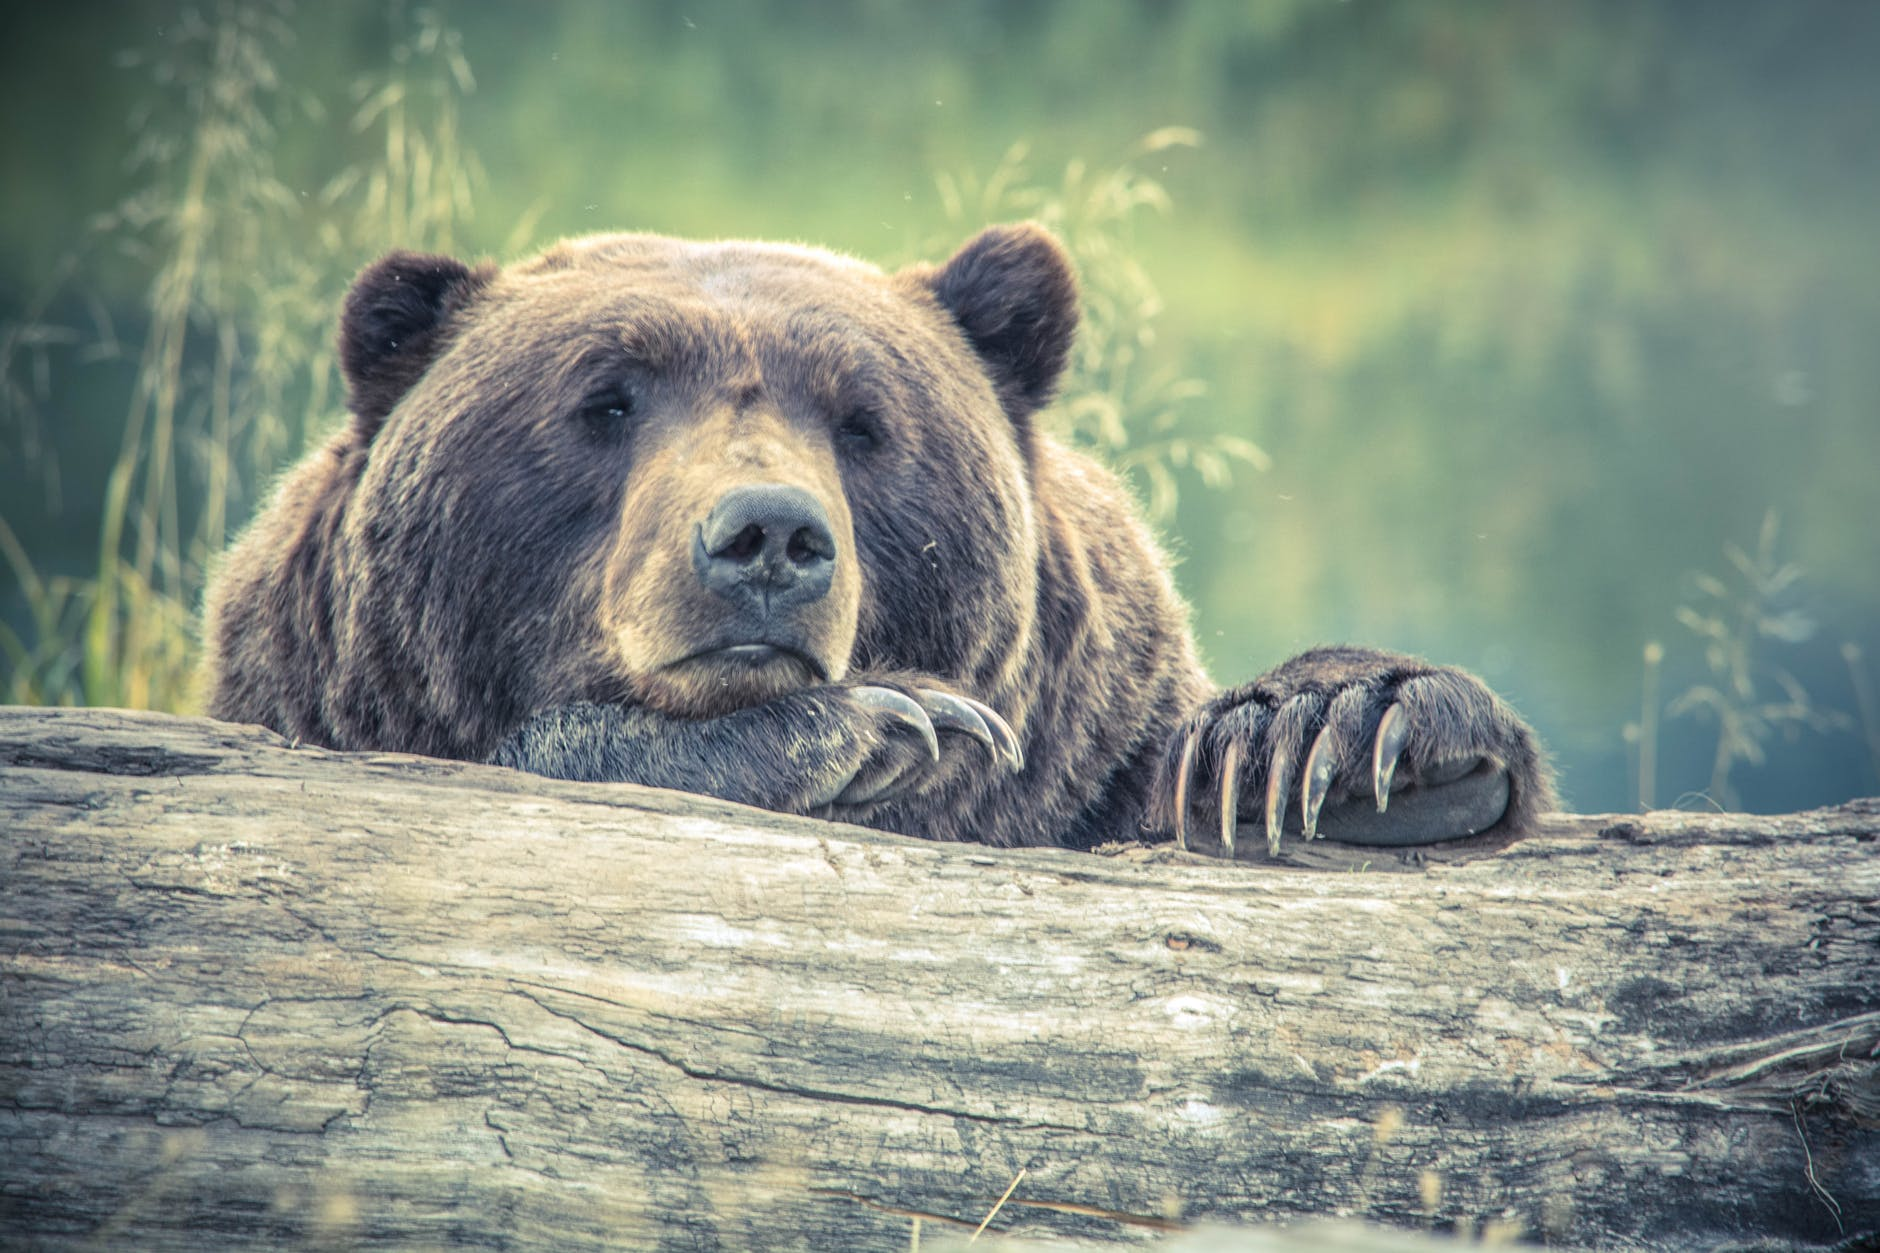 animal animal photography bear big